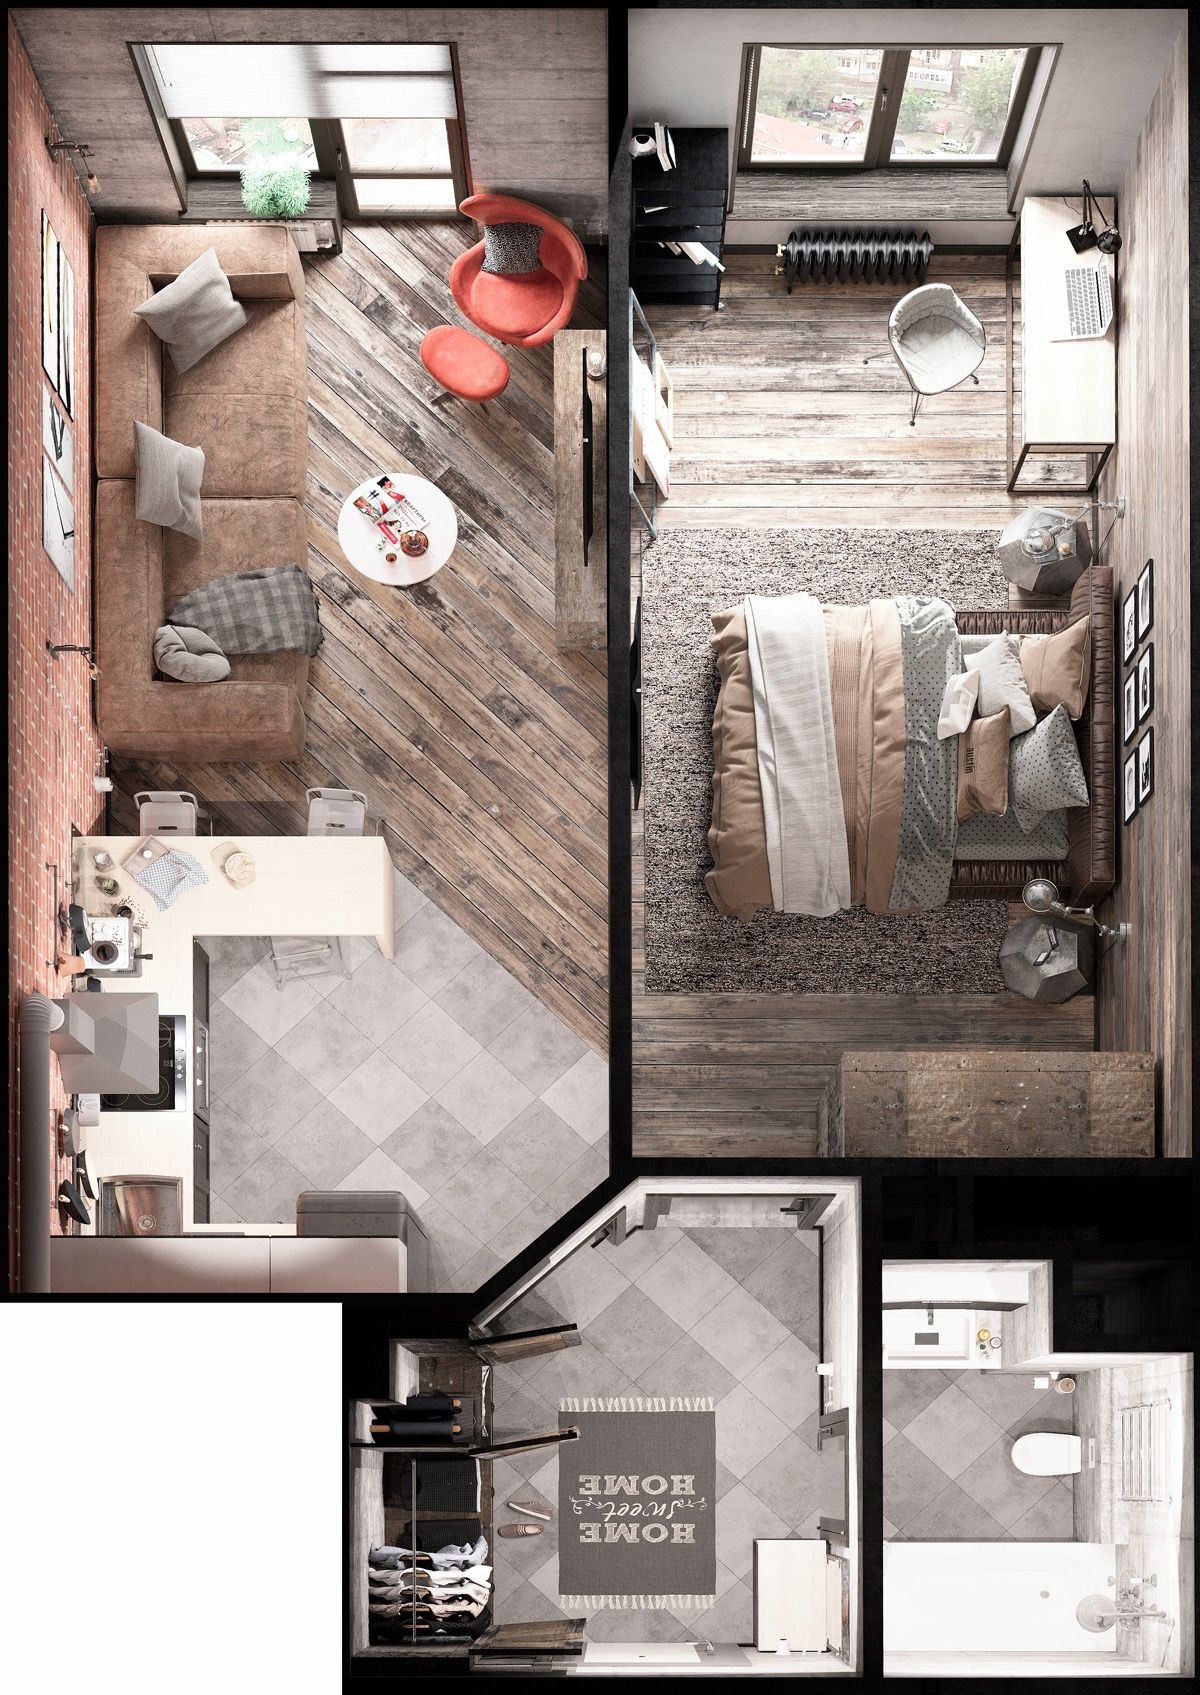 Home Designing Home Design Pinterest Square Meter Small